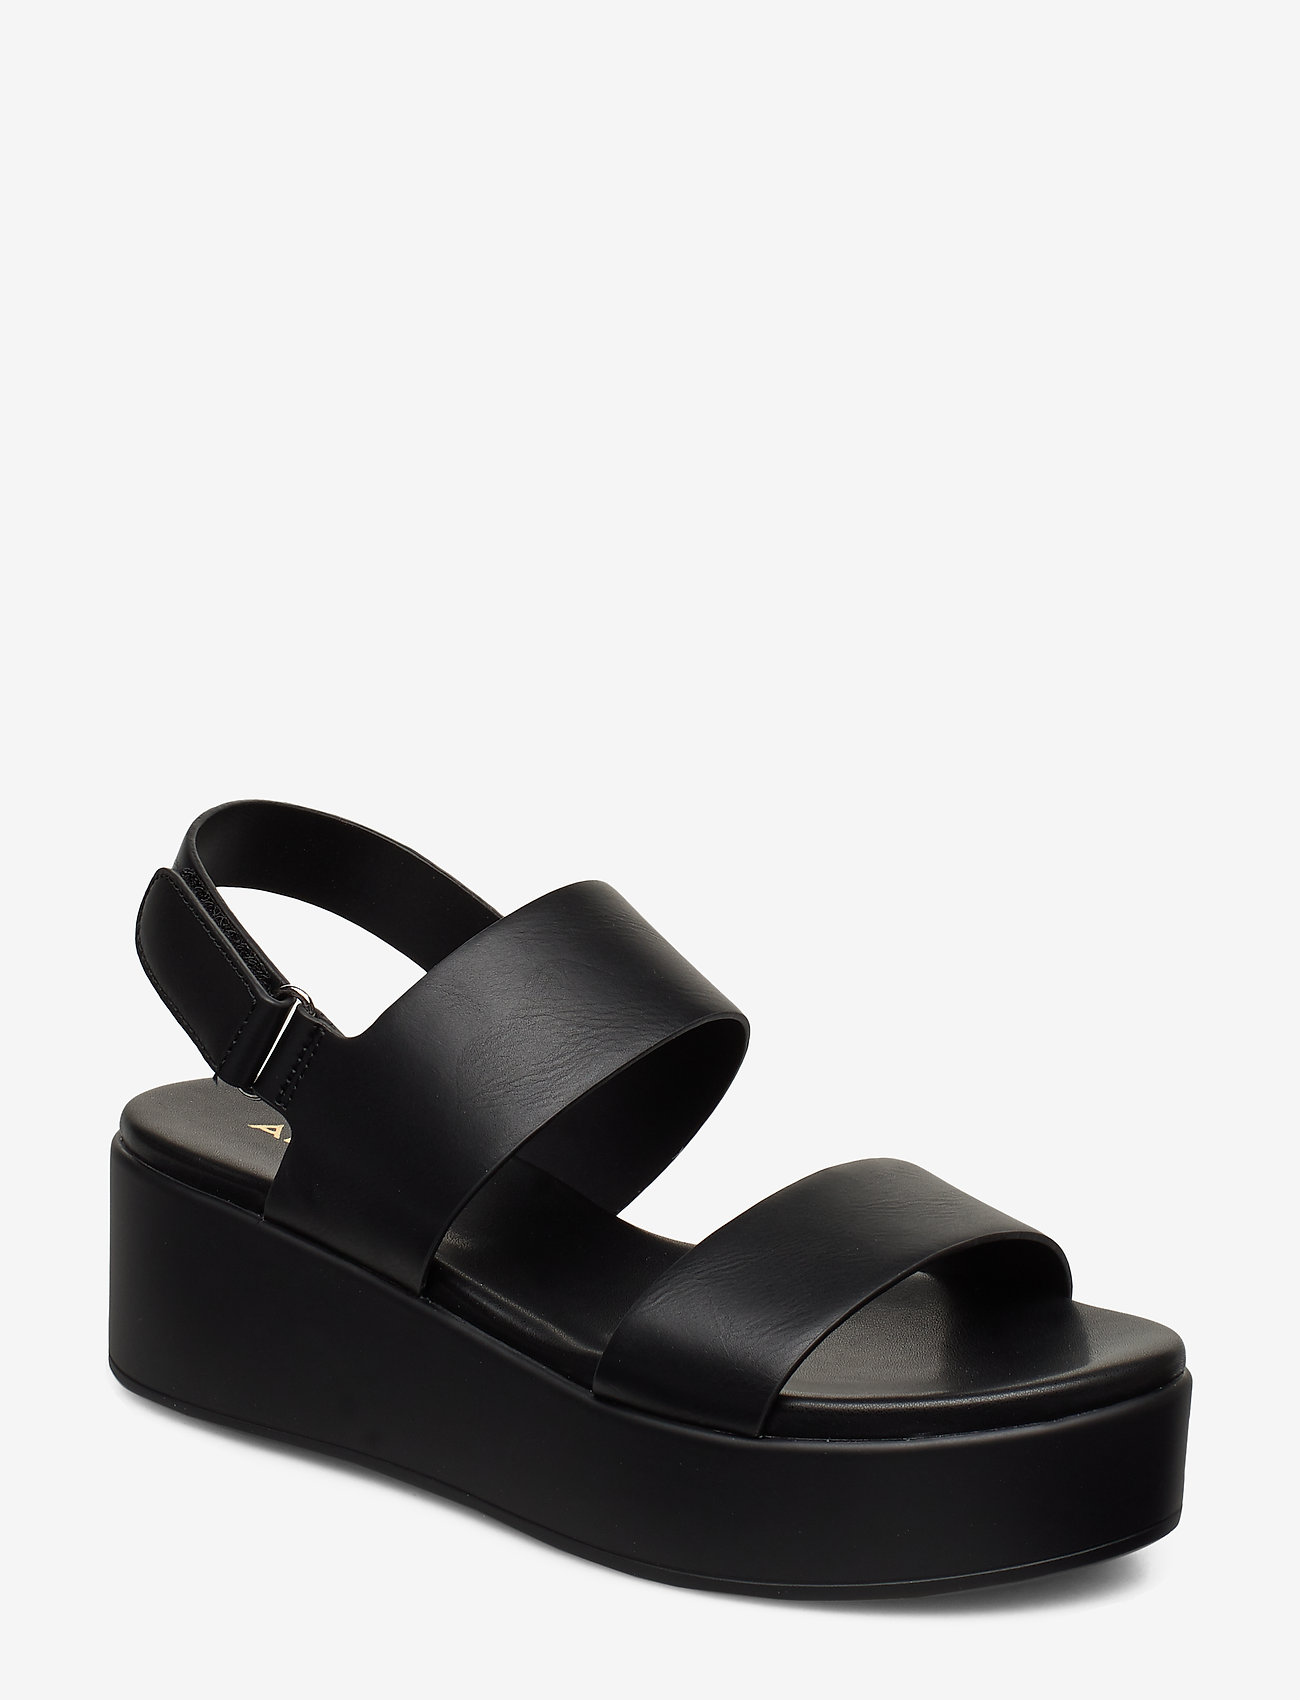 Aldo - AGRERINIA - wedges - black